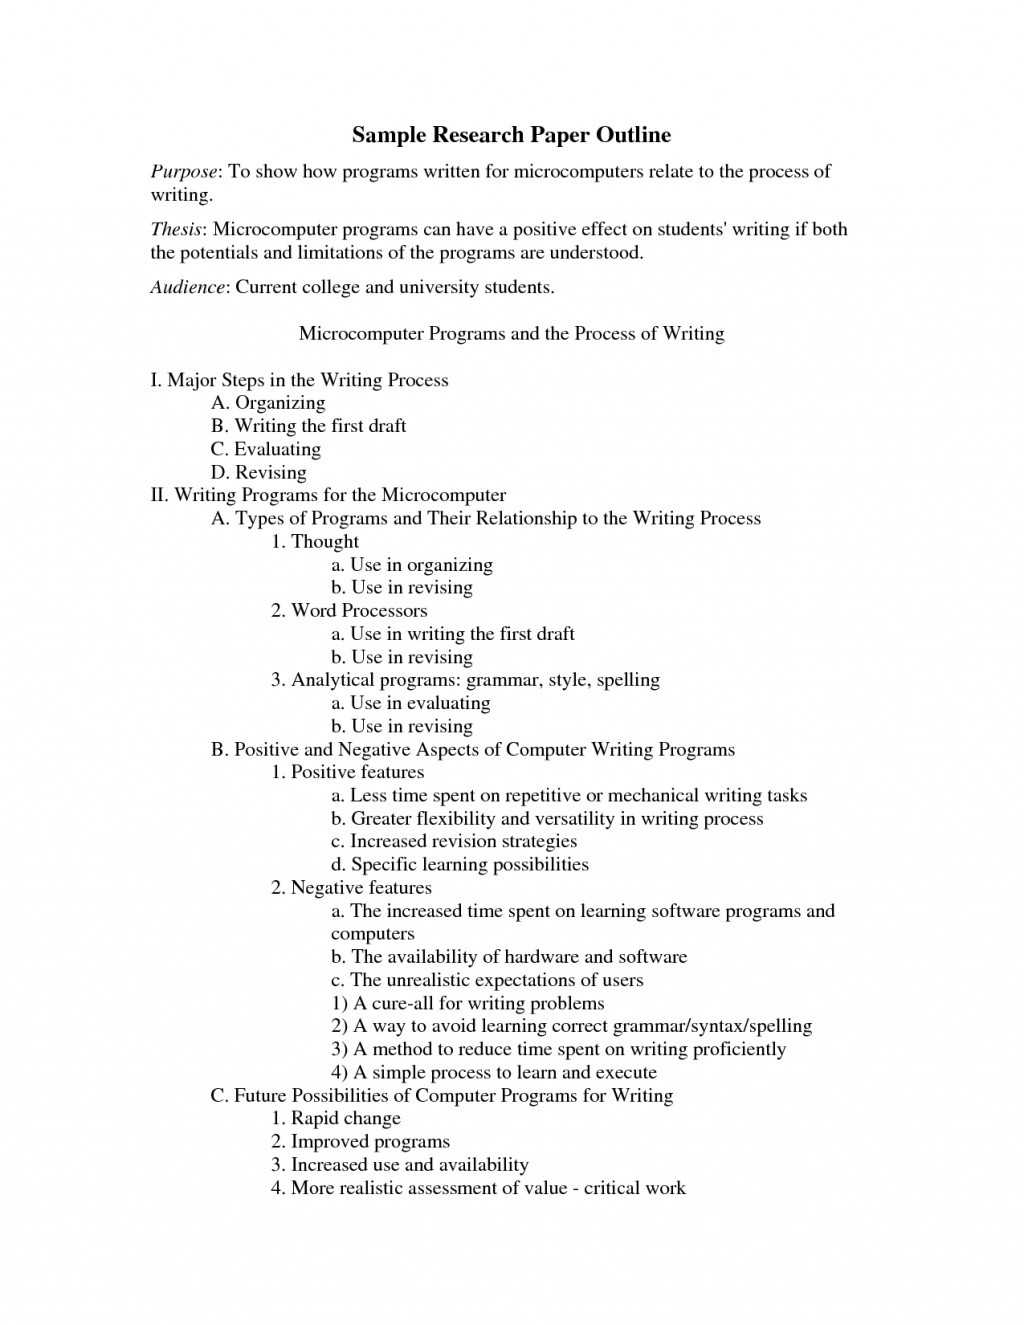 003 College Research Paper Outline Examples 477364mat Incredible Format For Mla Sample Sentence Example Thesis Statement Large